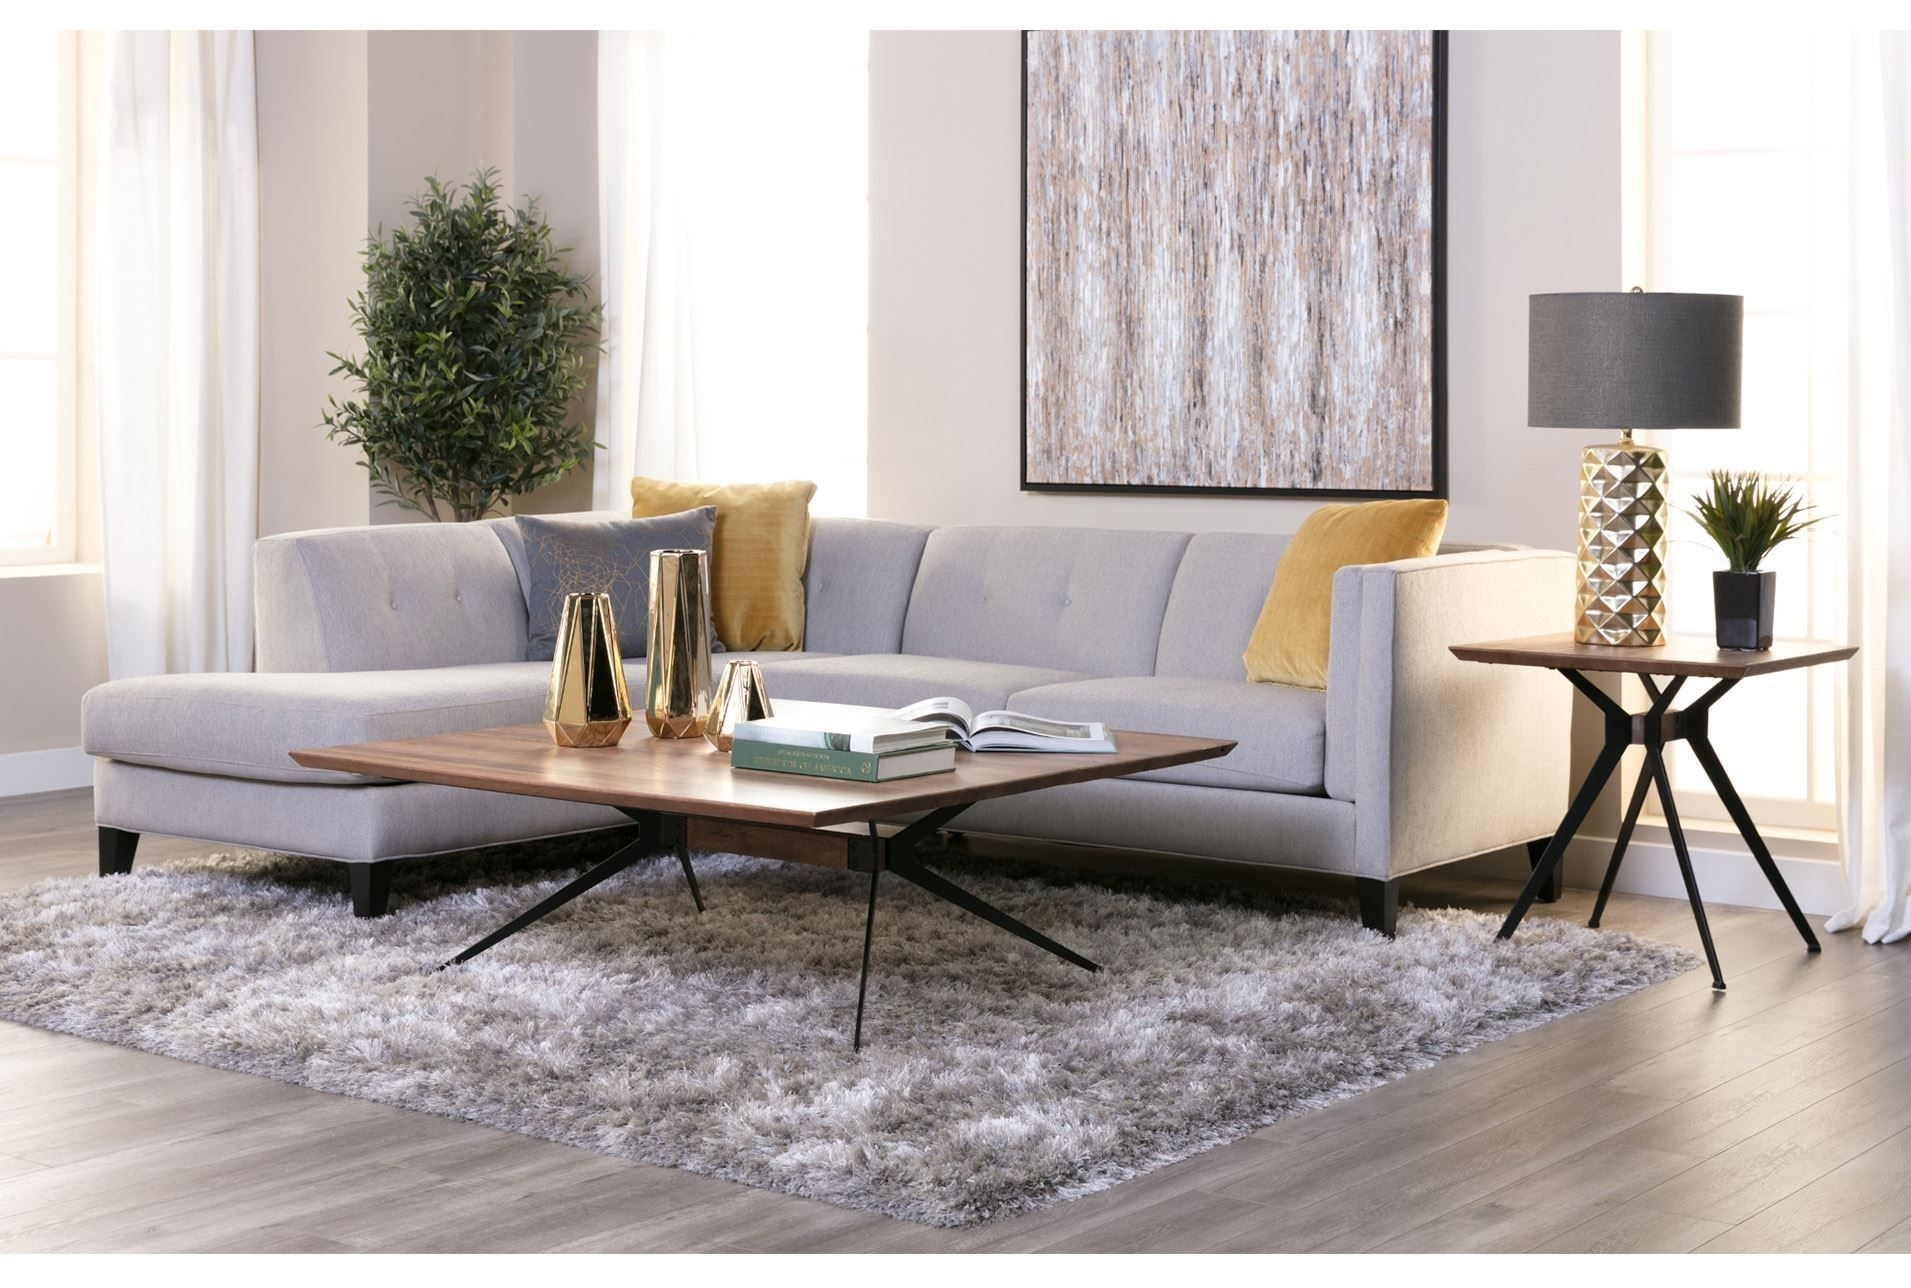 Avery 2 Piece Sectional W/laf Armless Chaise | Home Decor/interior for Avery 2 Piece Sectionals With Raf Armless Chaise (Image 5 of 30)